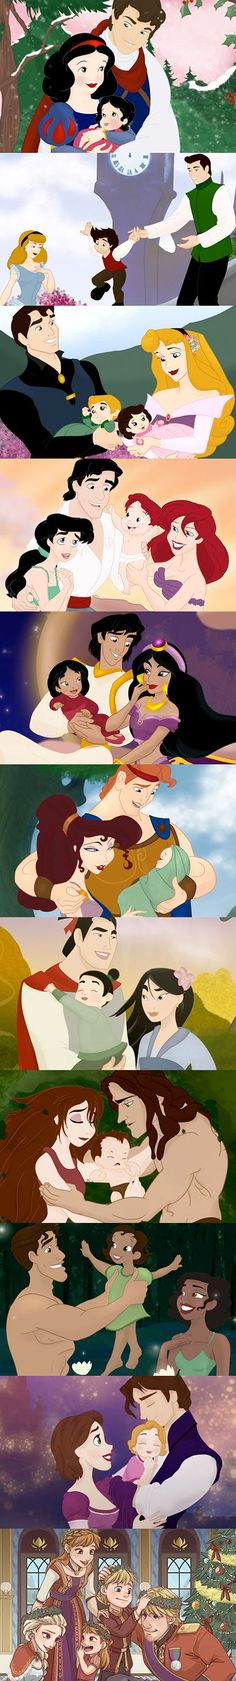 Disney Children - Kids of Disney Princes and Princesses - Cosmopolitan